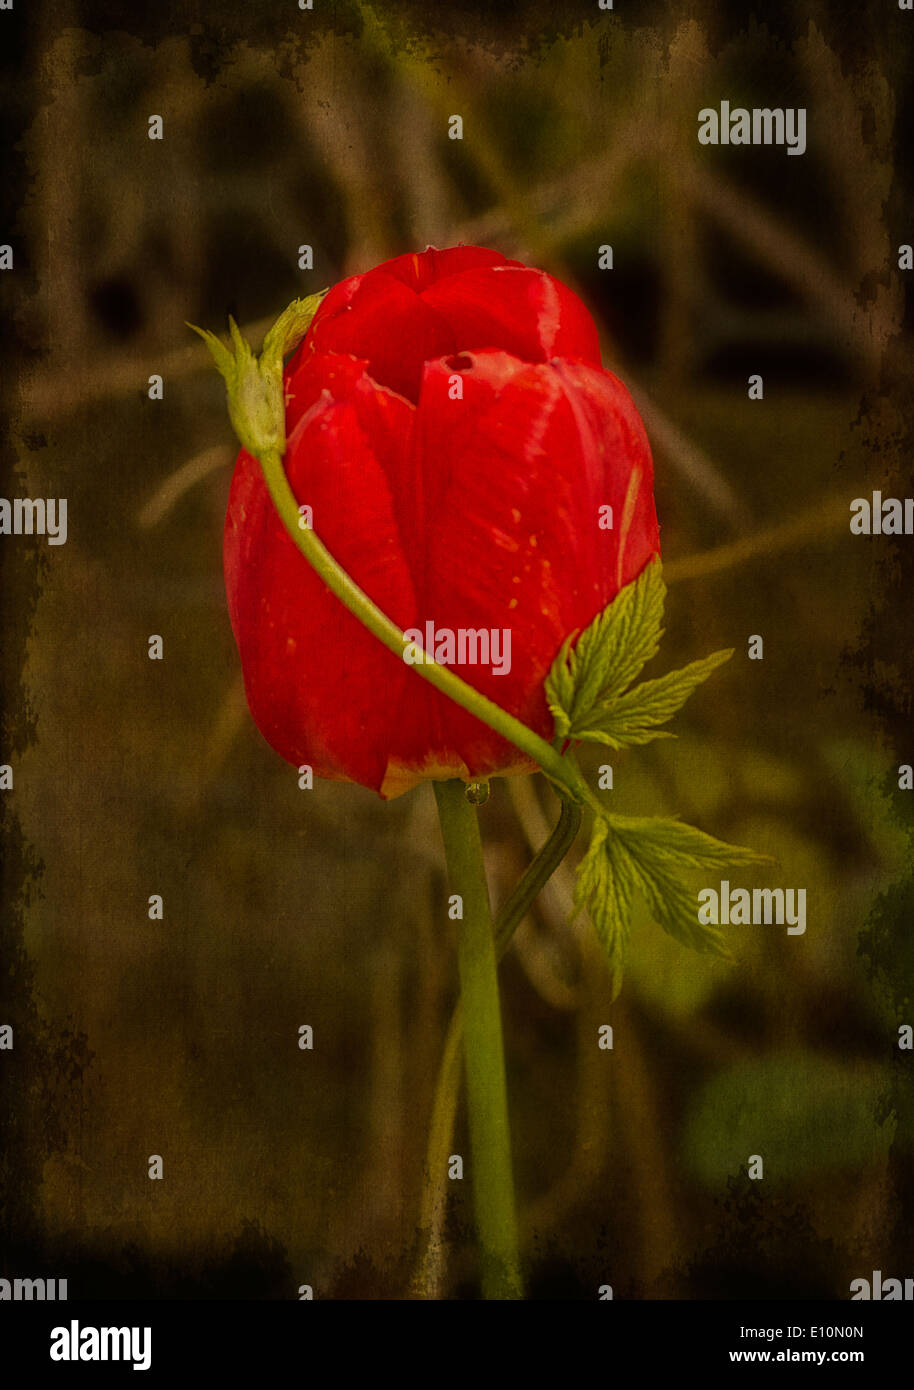 A stem of Golden Hop twining round a red tulip. - Stock Image